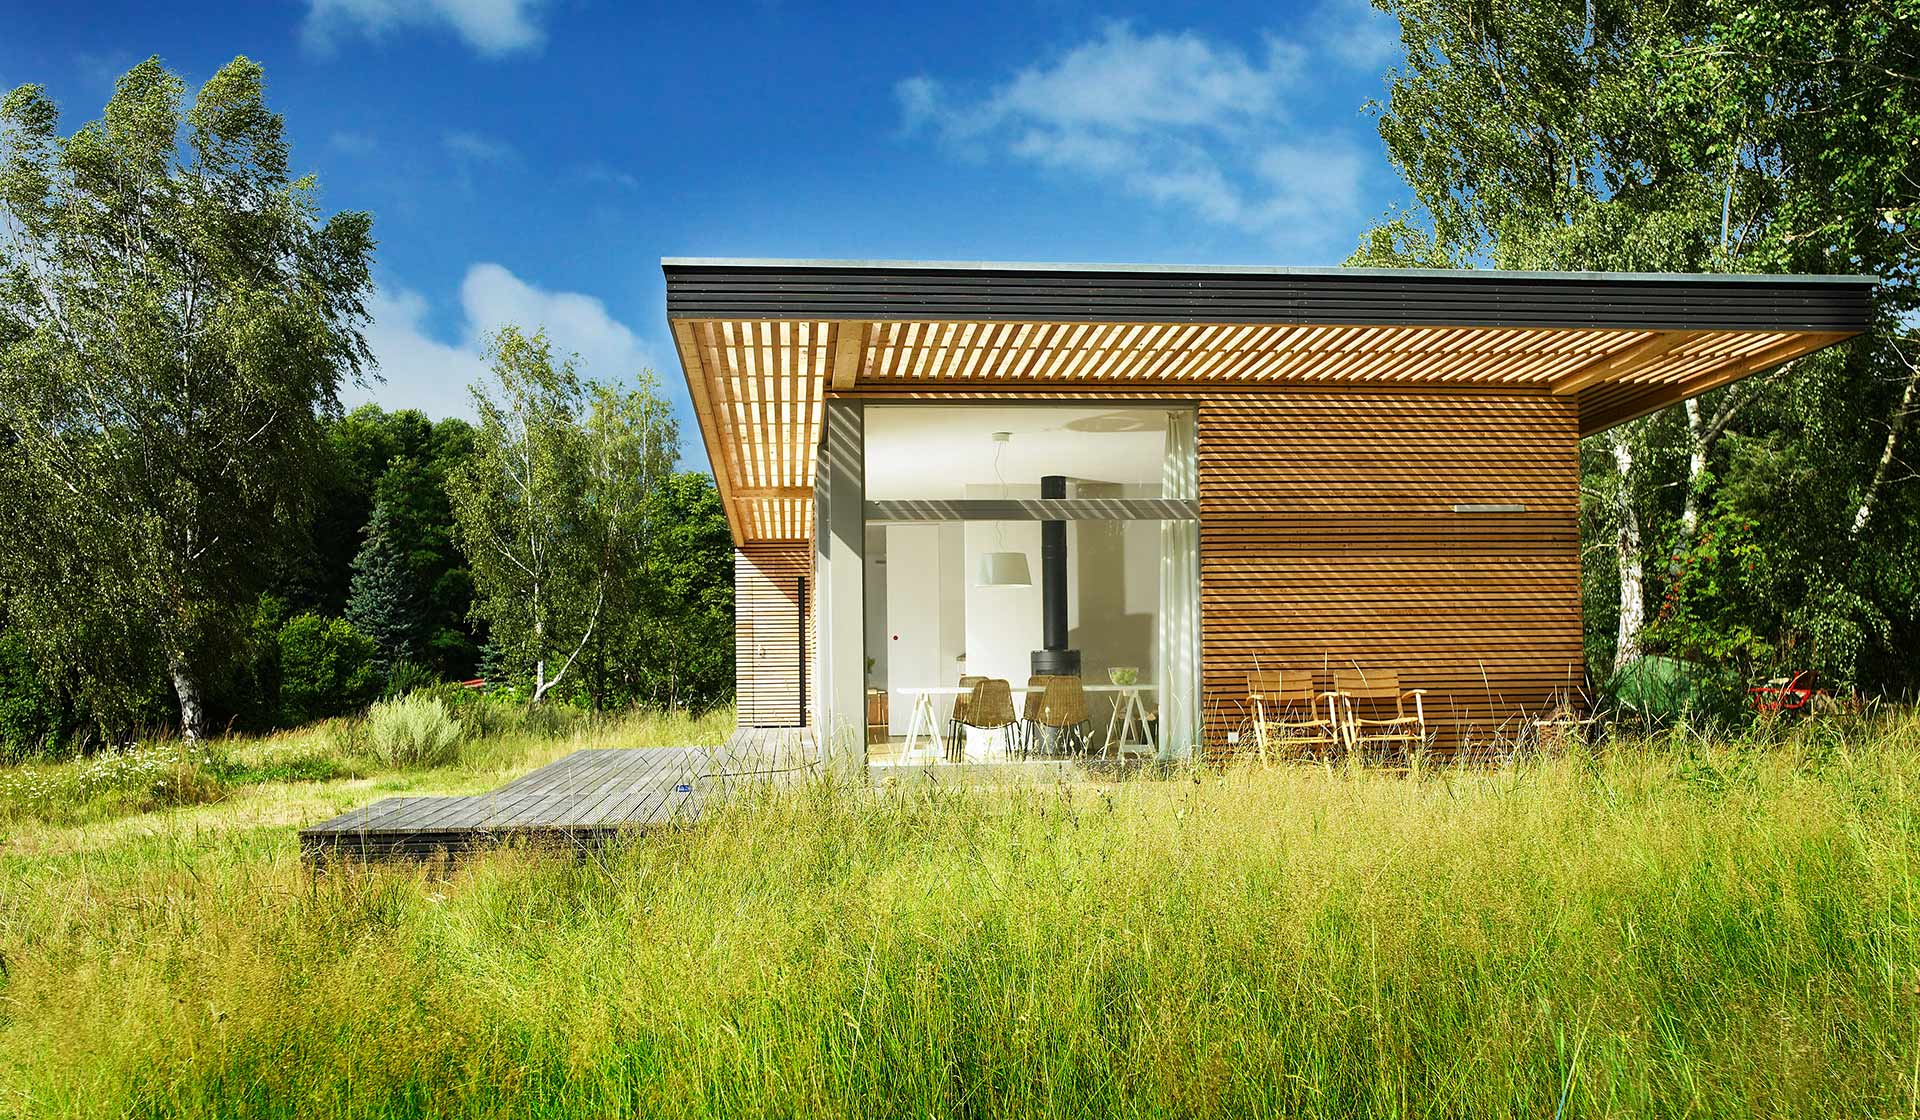 inspired by summerhouse culture sommerhaus piu is a cleanlined prefab vacation home